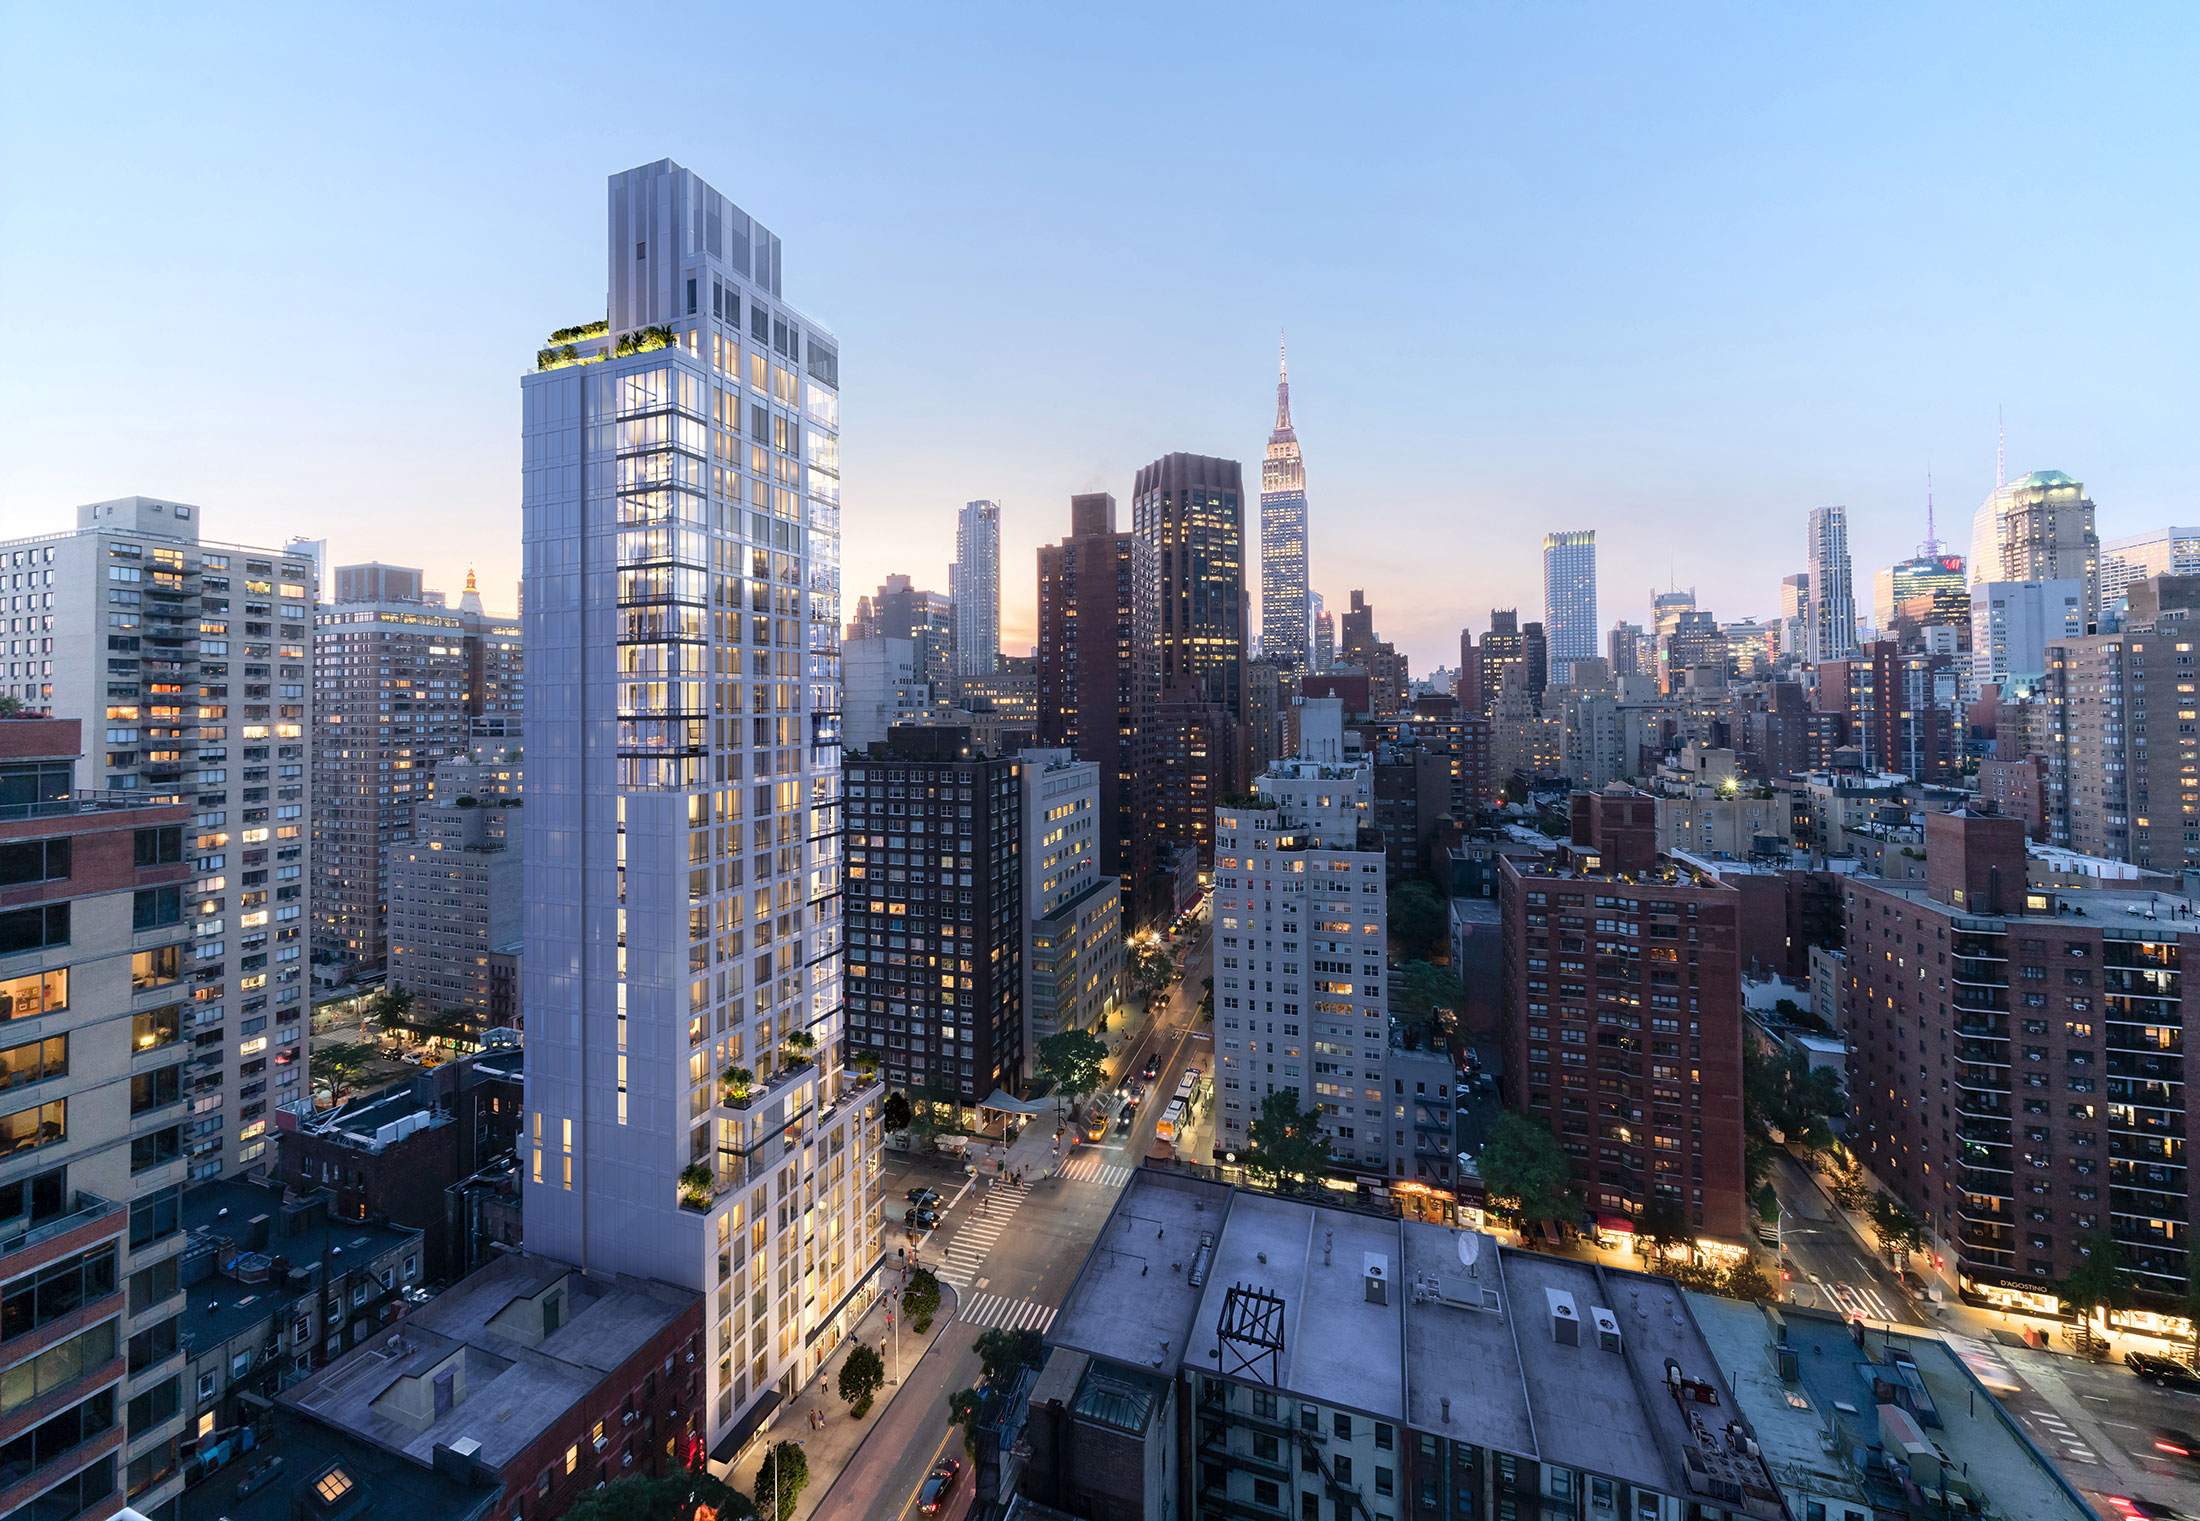 Architectural Rendering of the exterior of the Eastlight building project located on the Kips Bay neighborhood in New York City